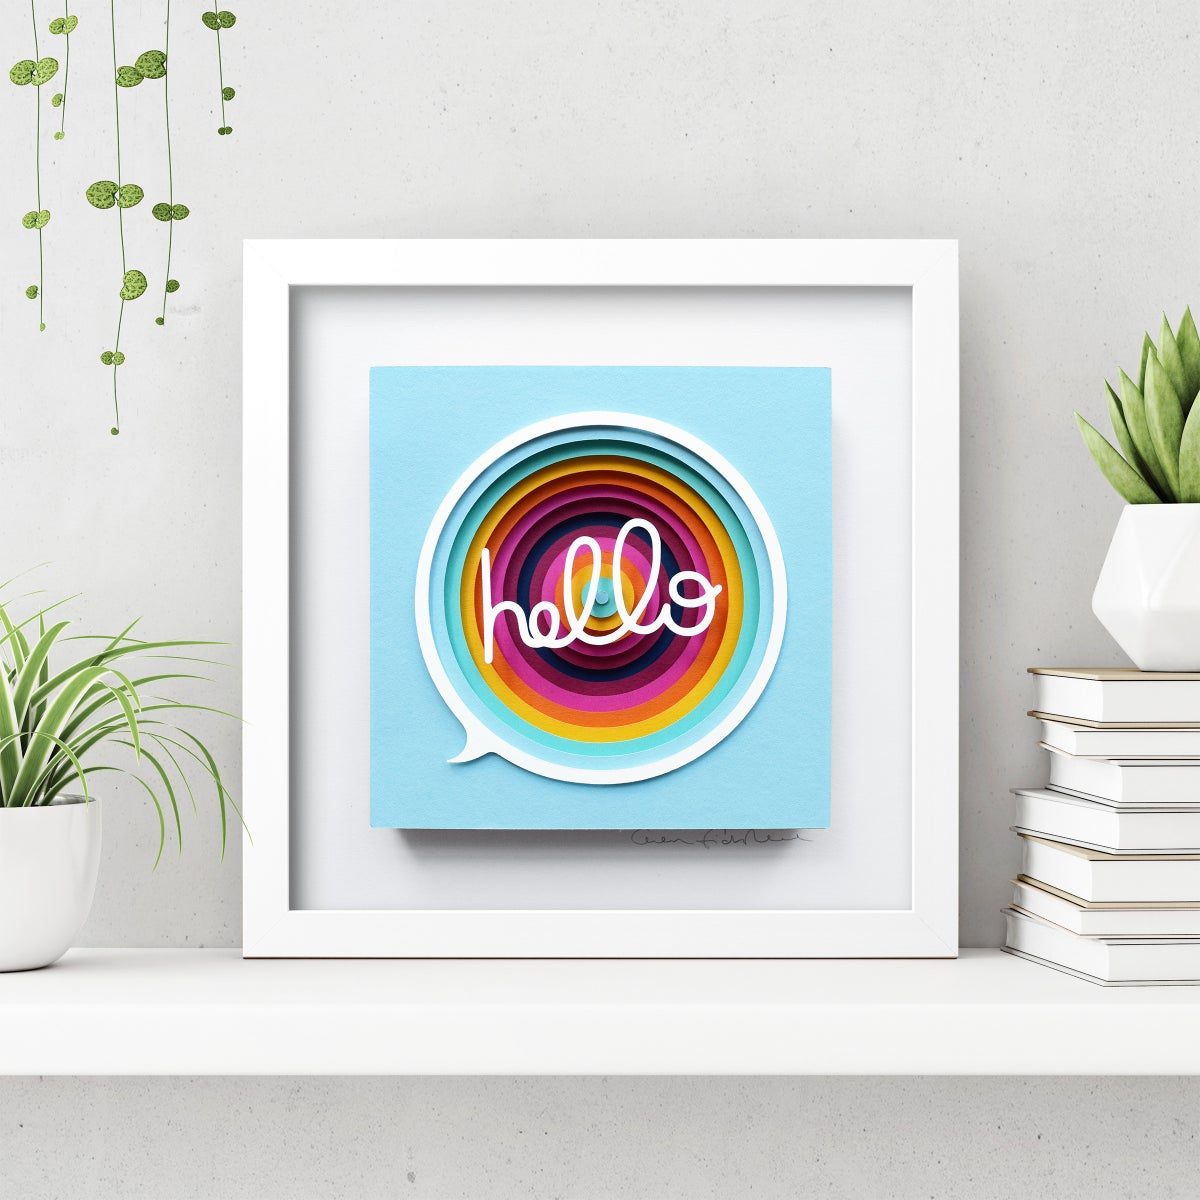 Image of Hello – Framed Original Paper Cut Artwork